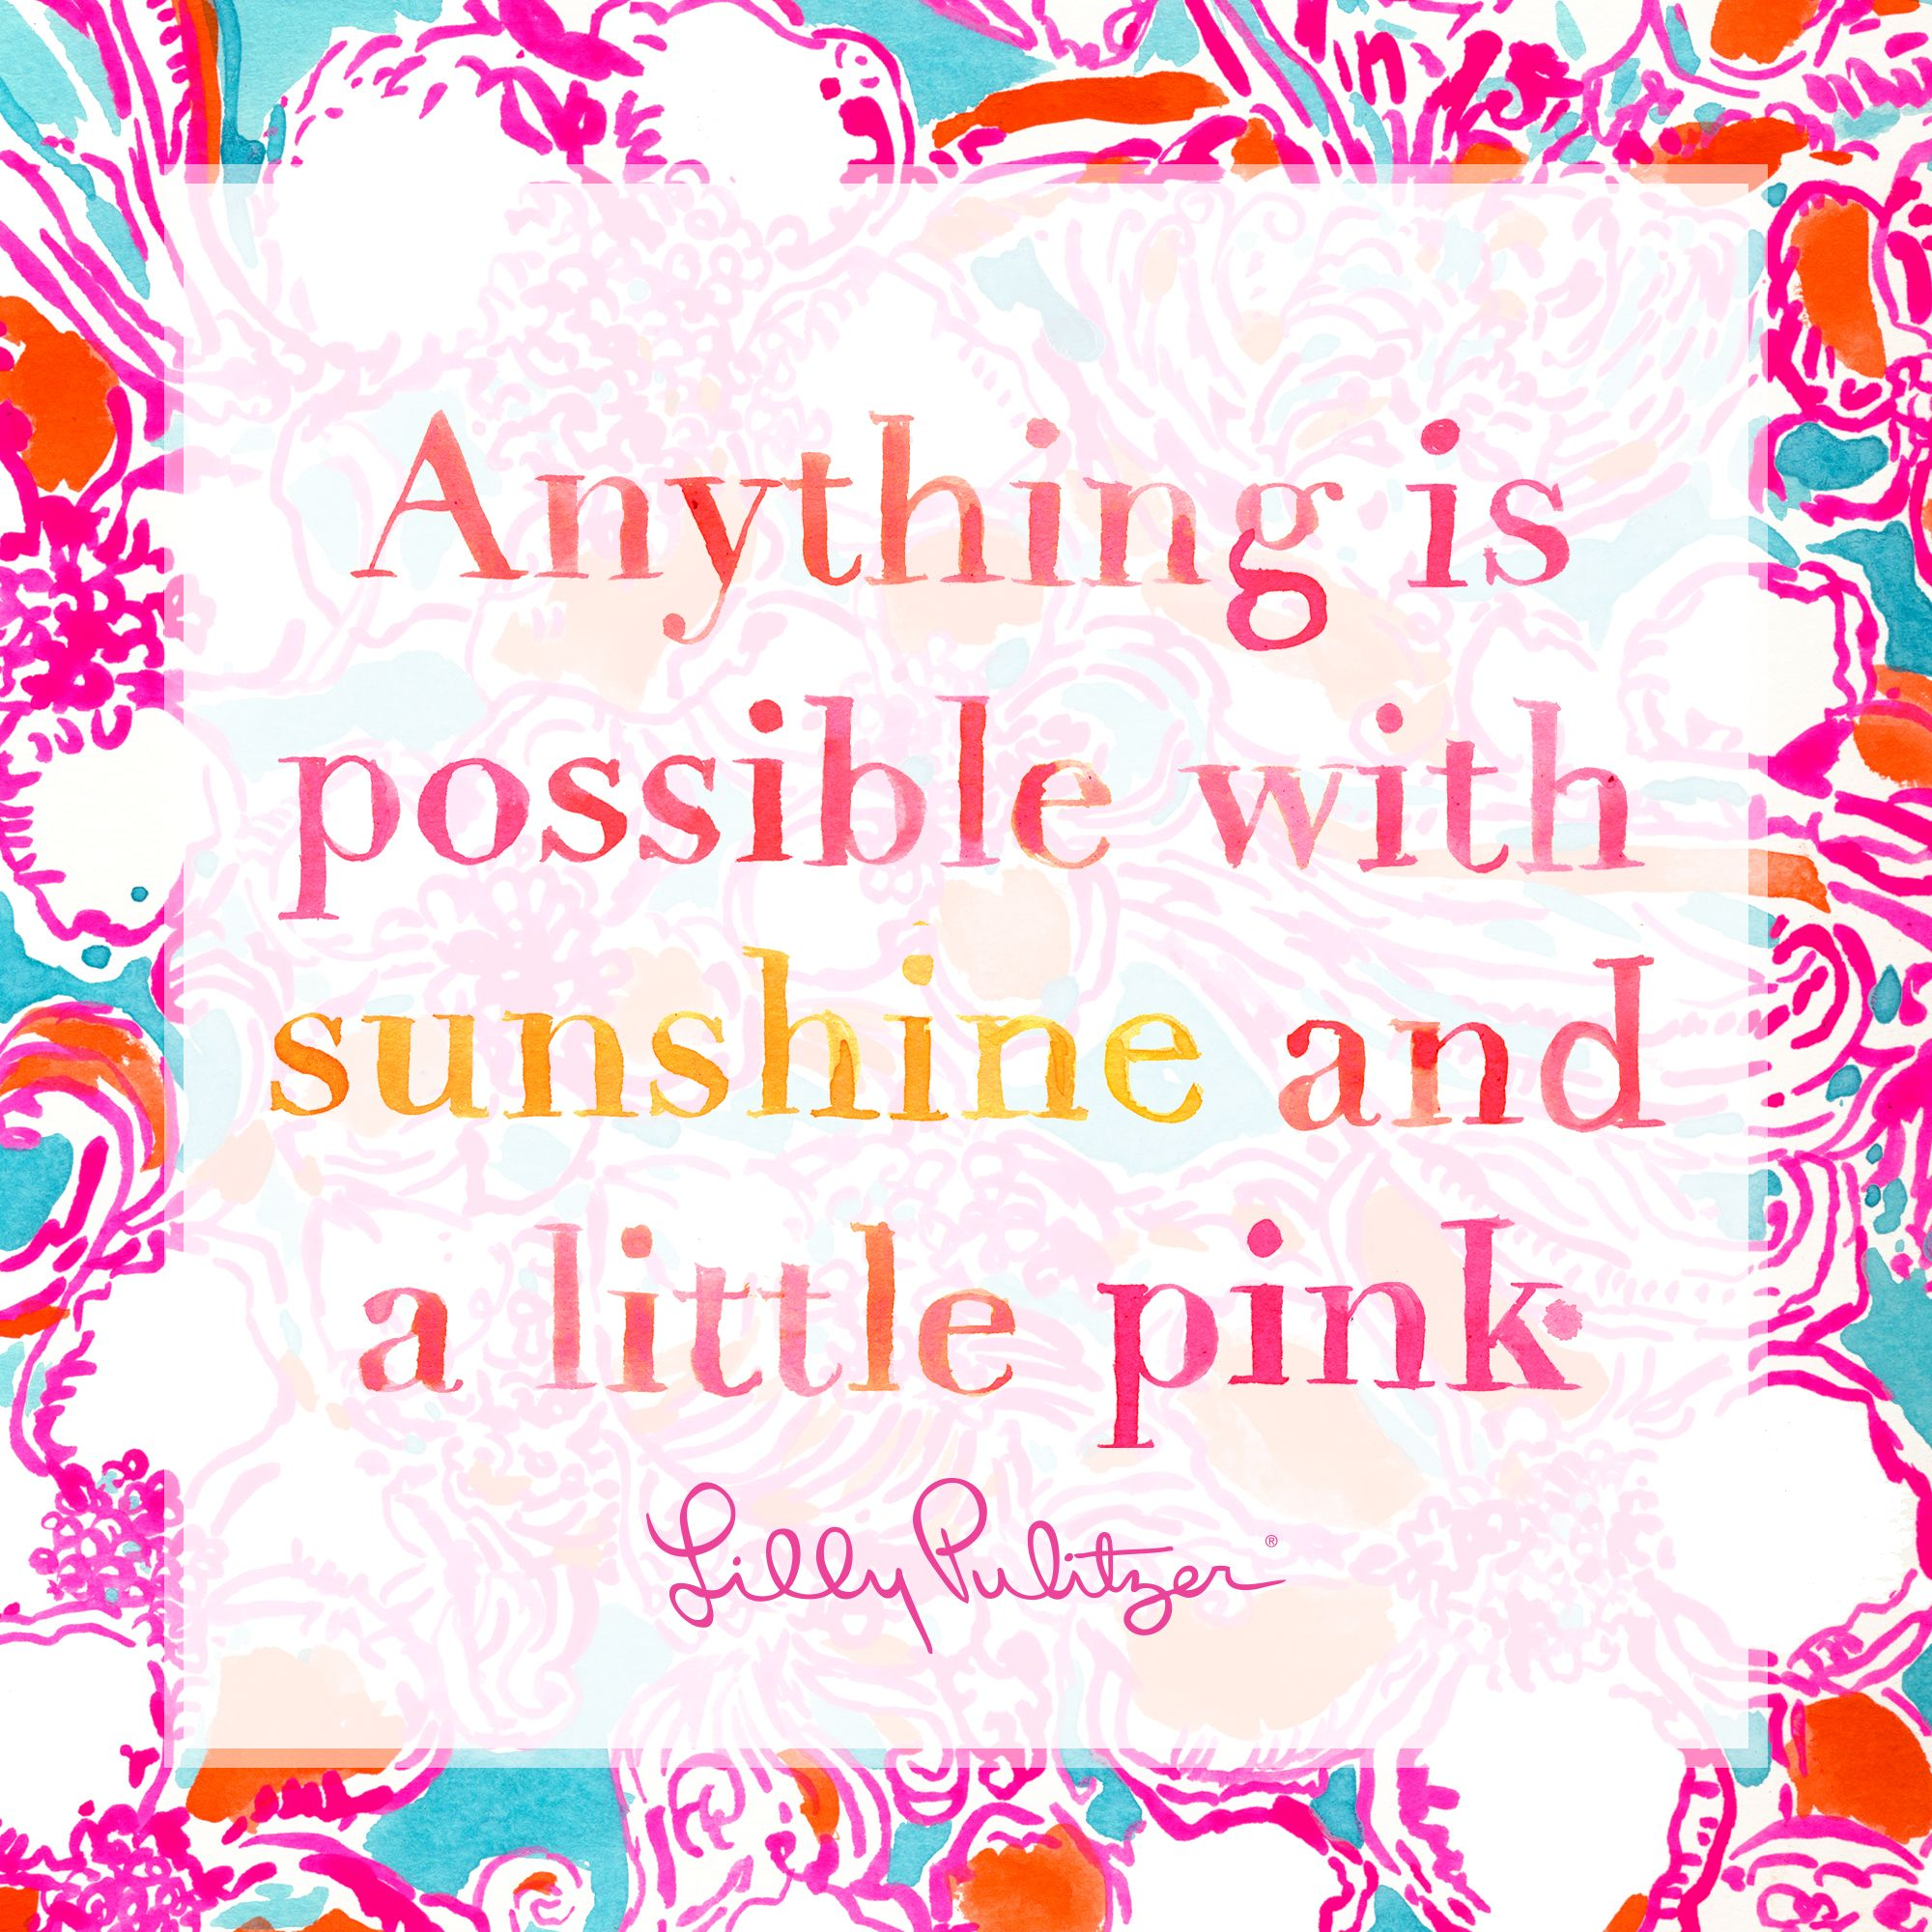 Lilly Pulitzer Quotes 8 Of The Best Lilly Pulitzer Quotes Of All Time  Sunshine Lily